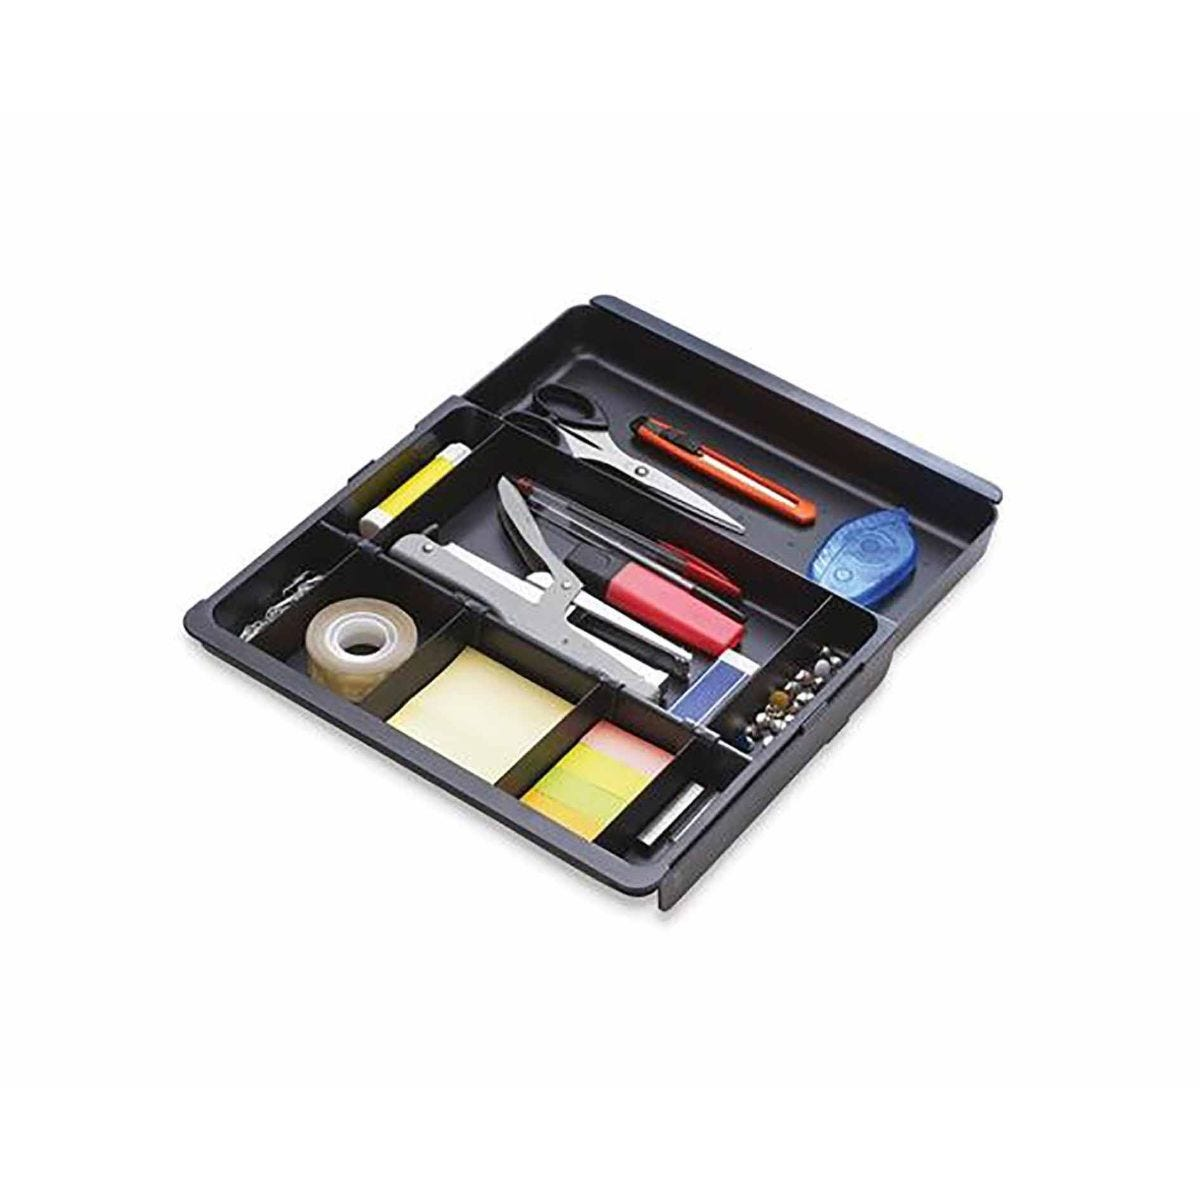 Exacompta Eco Drawer Organiser Black